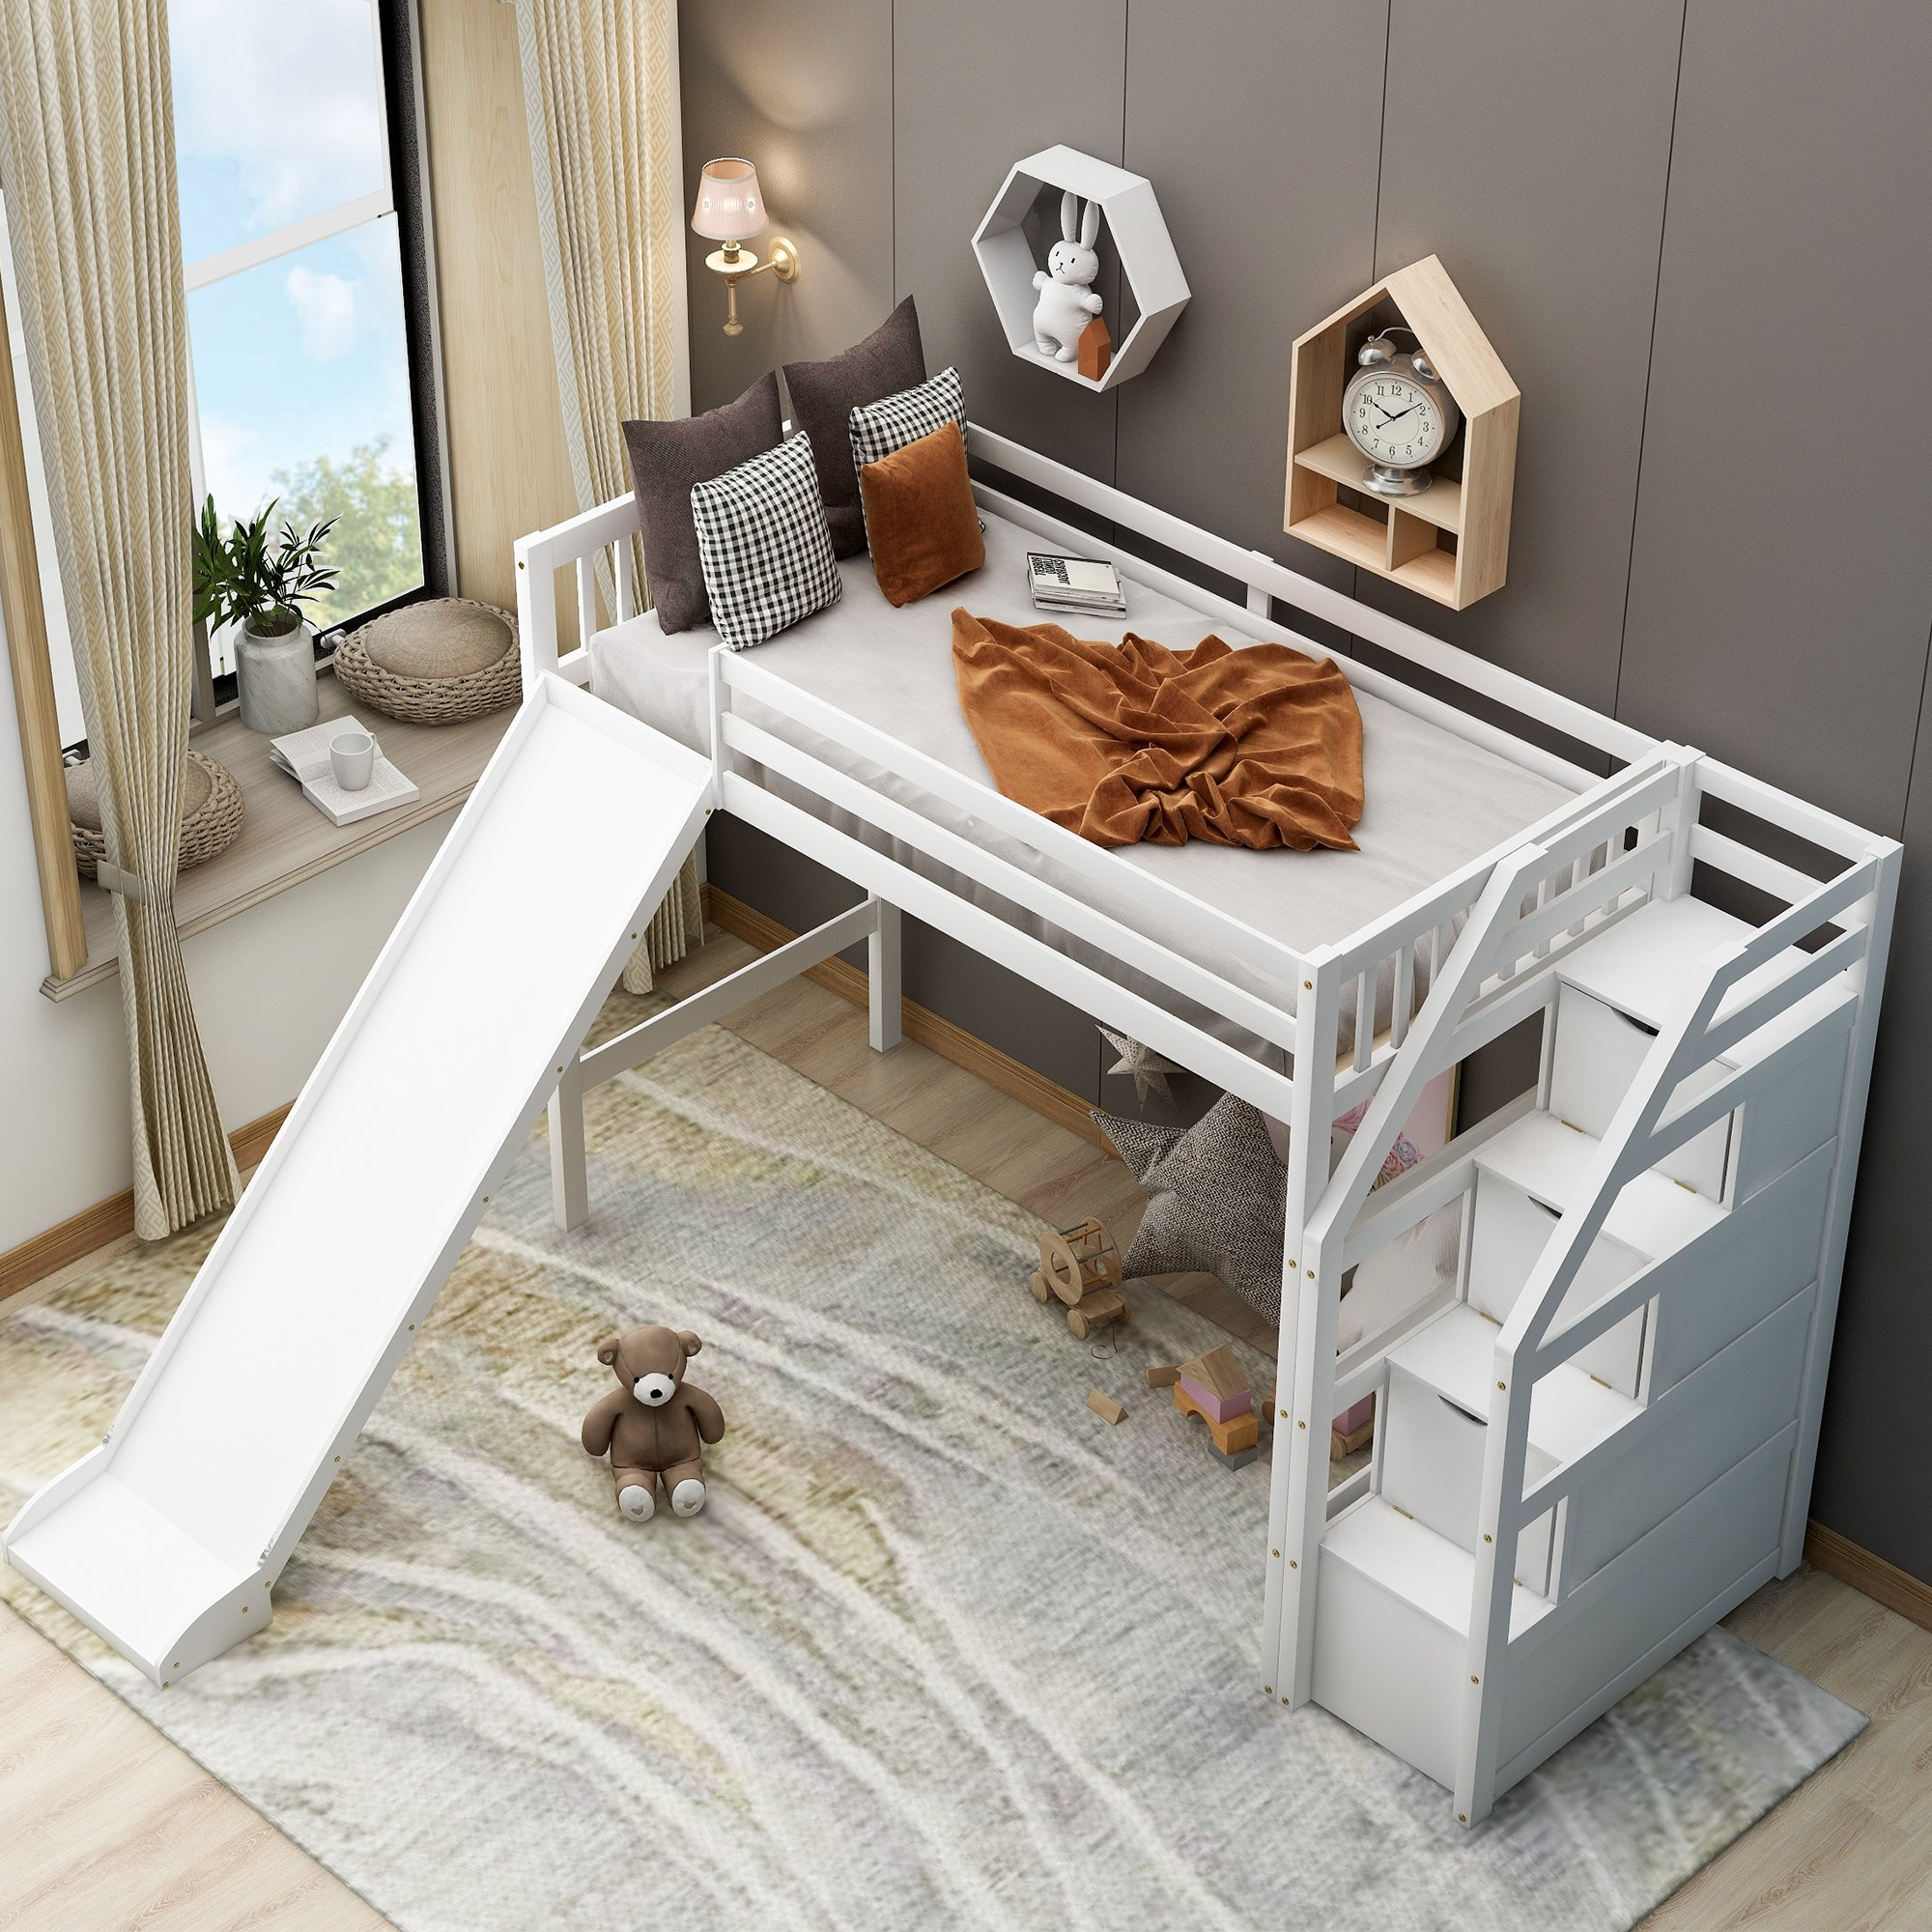 Twin size Loft Bed with Storage and Slide - Cool Toddler Beds